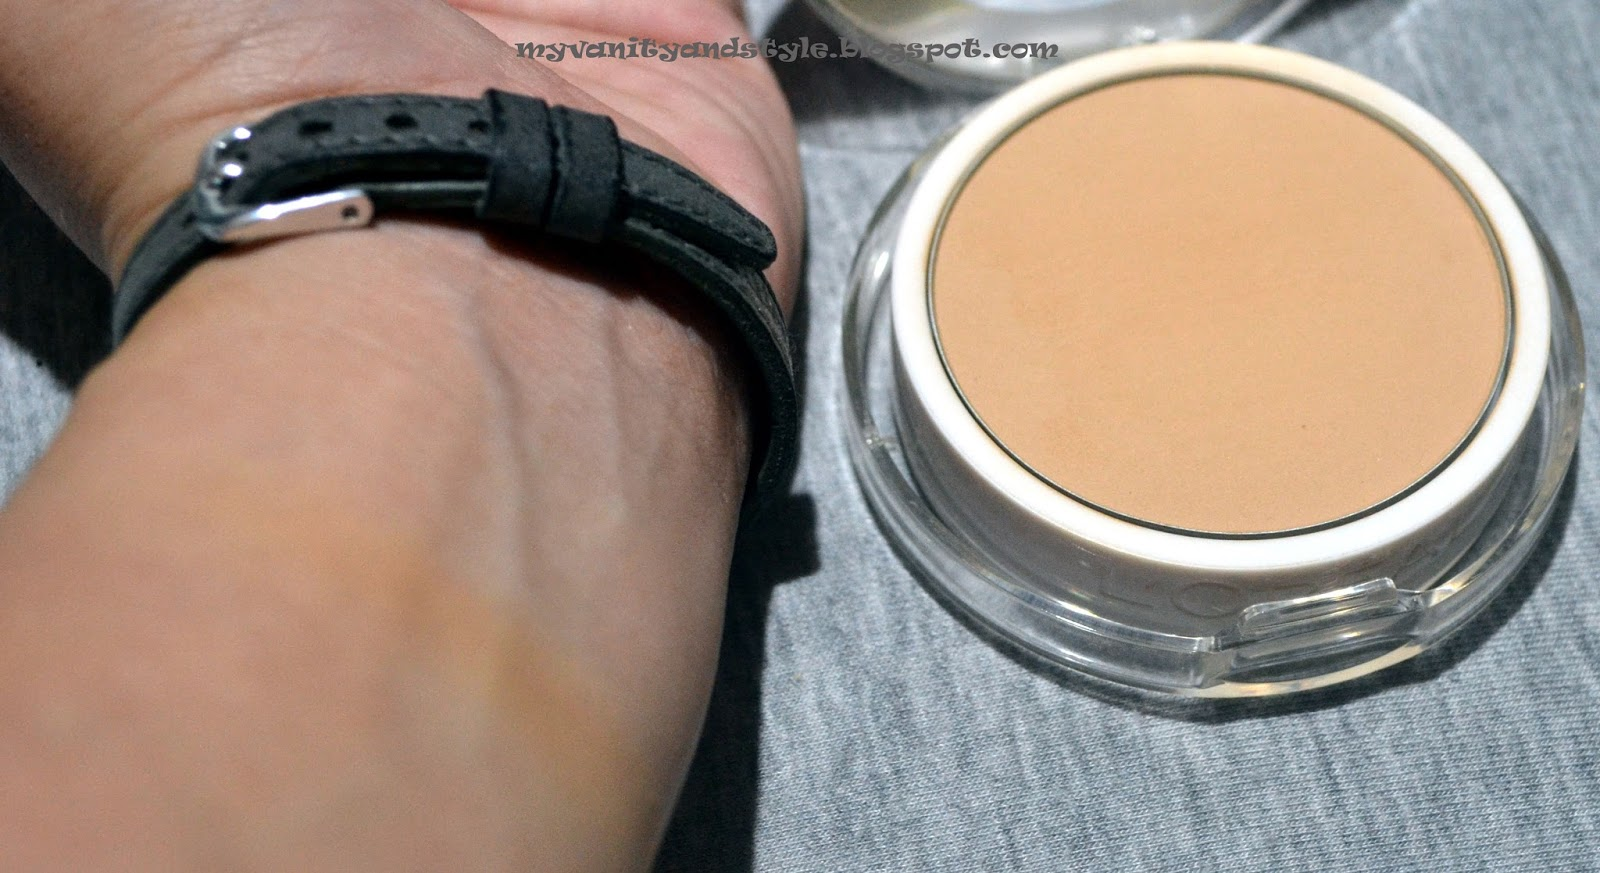 myVanityandStyle: Loreal Paris Mat Magique BB Veil in G2 - Golden Ivory